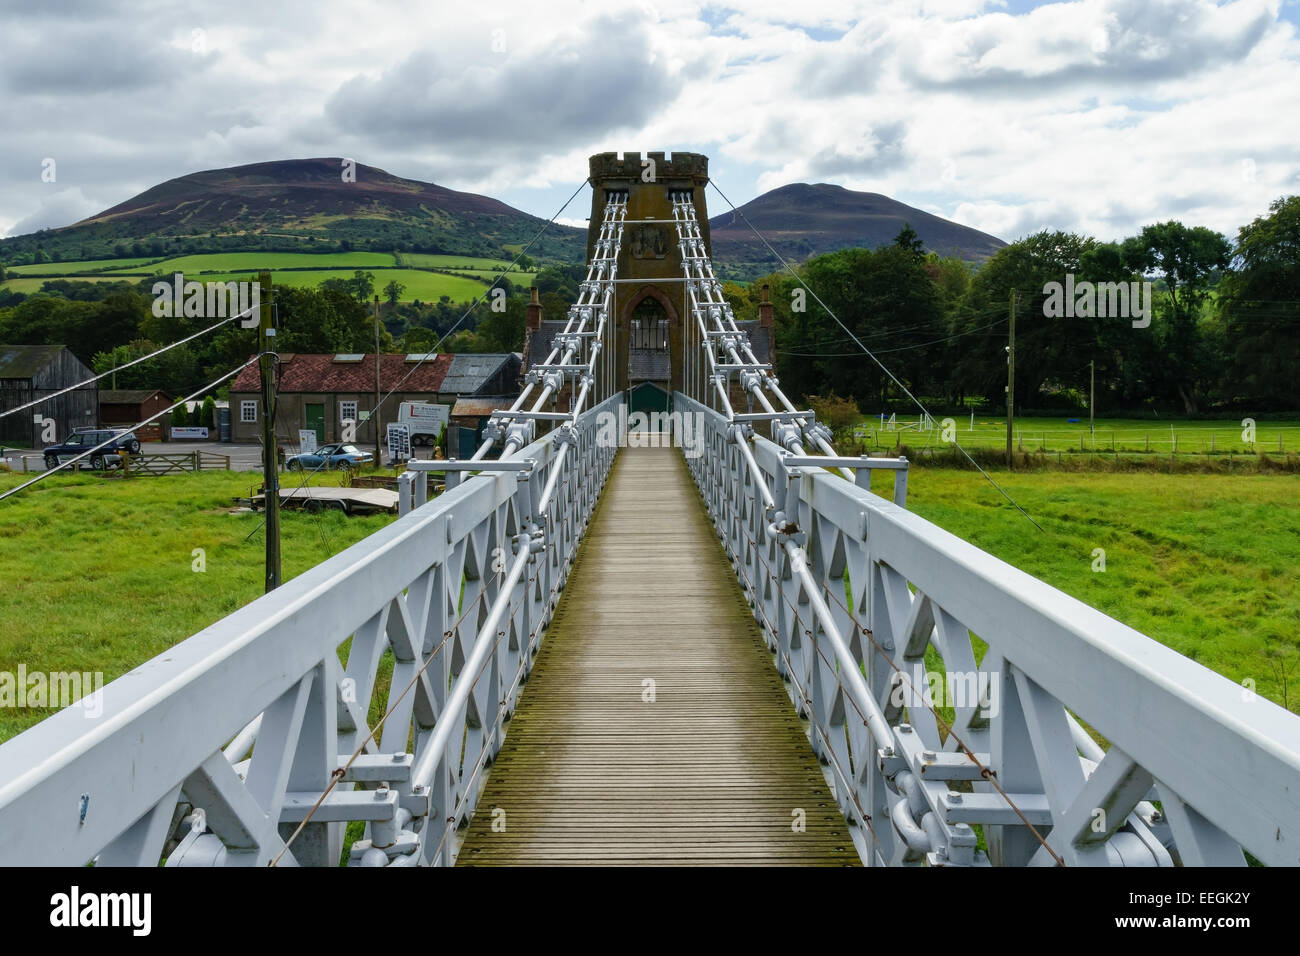 The iron suspension chainbridge across the River Tweed at Melrose, Scottish Borders. The Eildon Hills in the background. - Stock Image